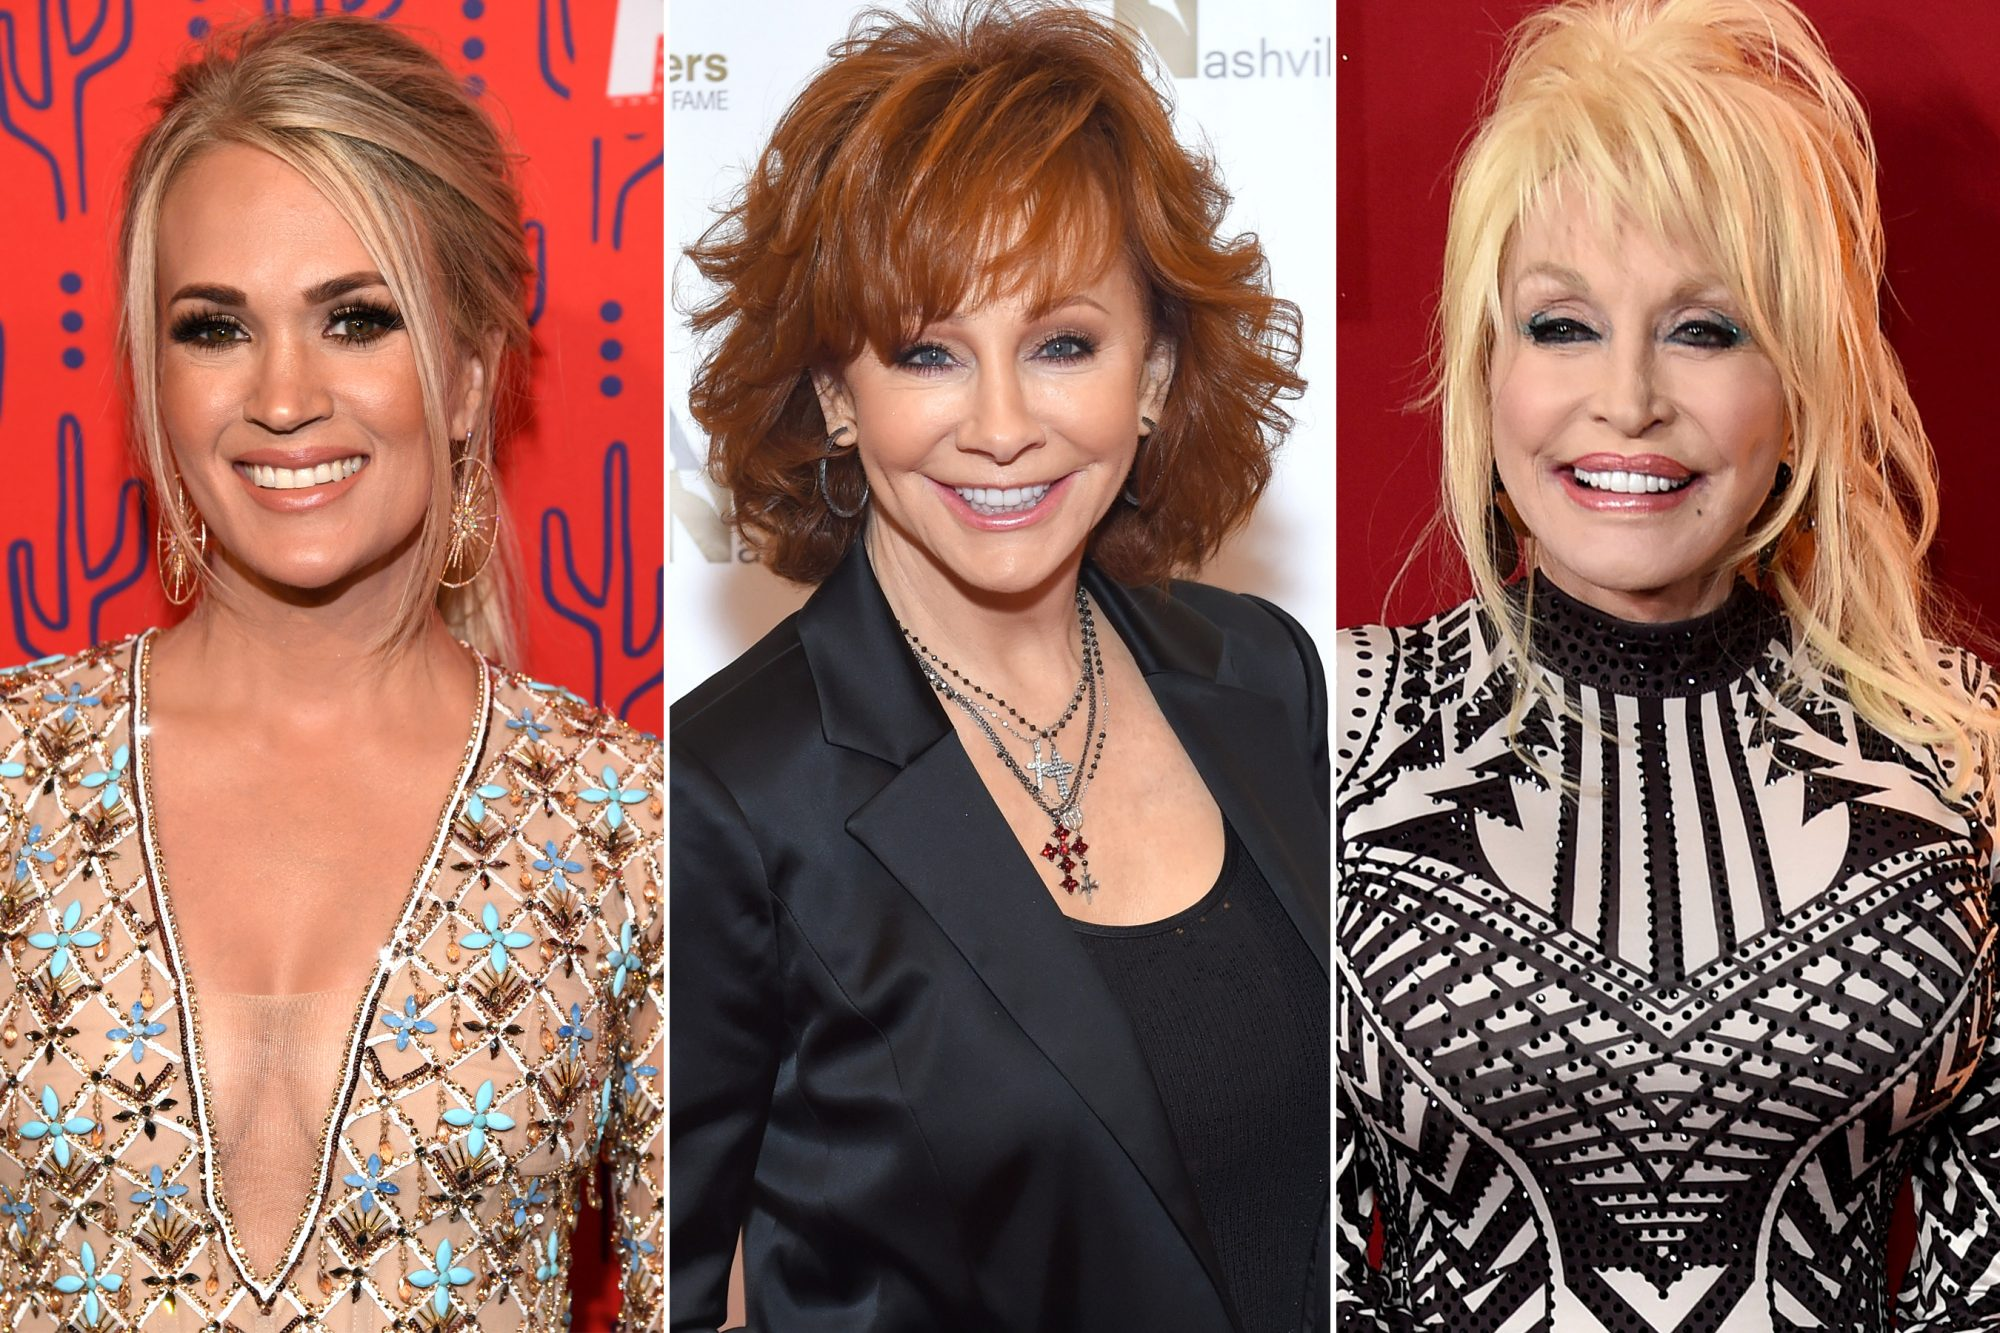 Carrie Underwood; Reba McEntire; Dolly Parton